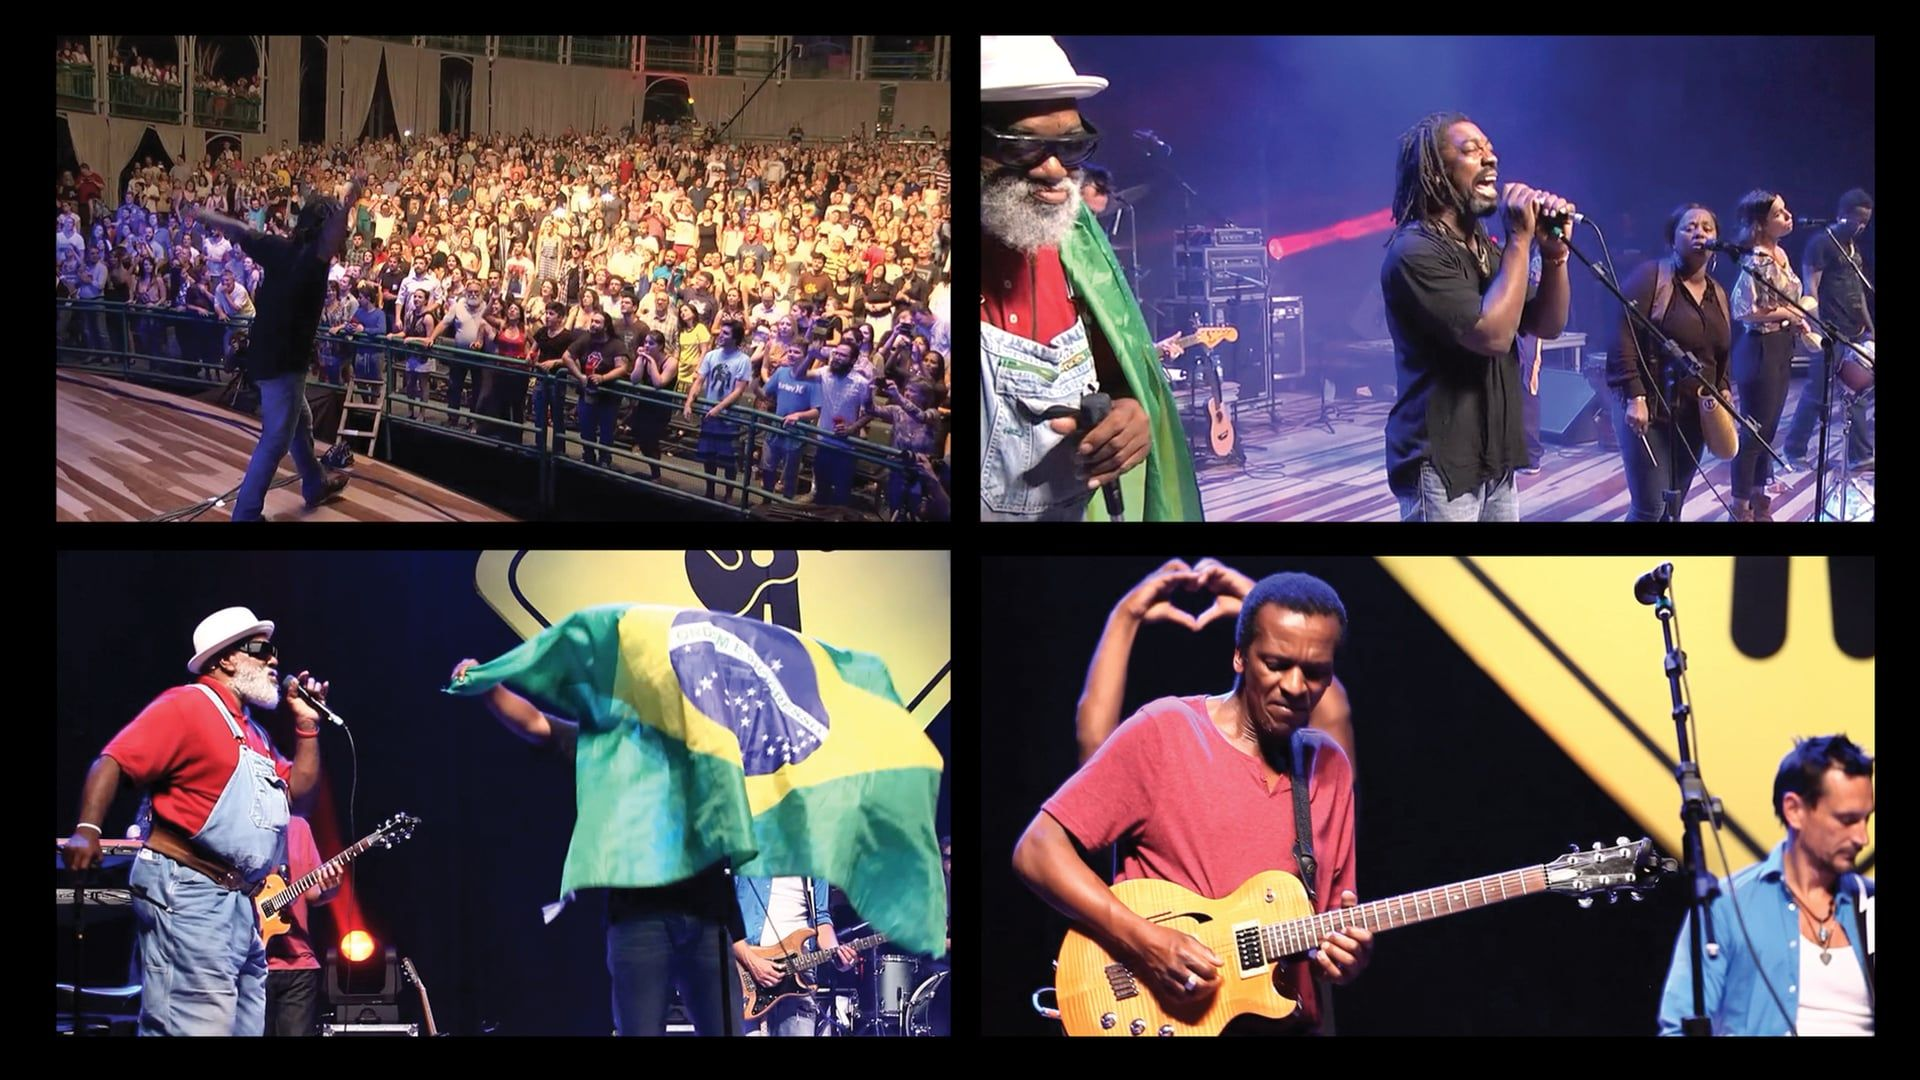 Stand By Me Pfc Band Live In Brazil Playing For Change Living In Brazil Stand By Me Music Tours